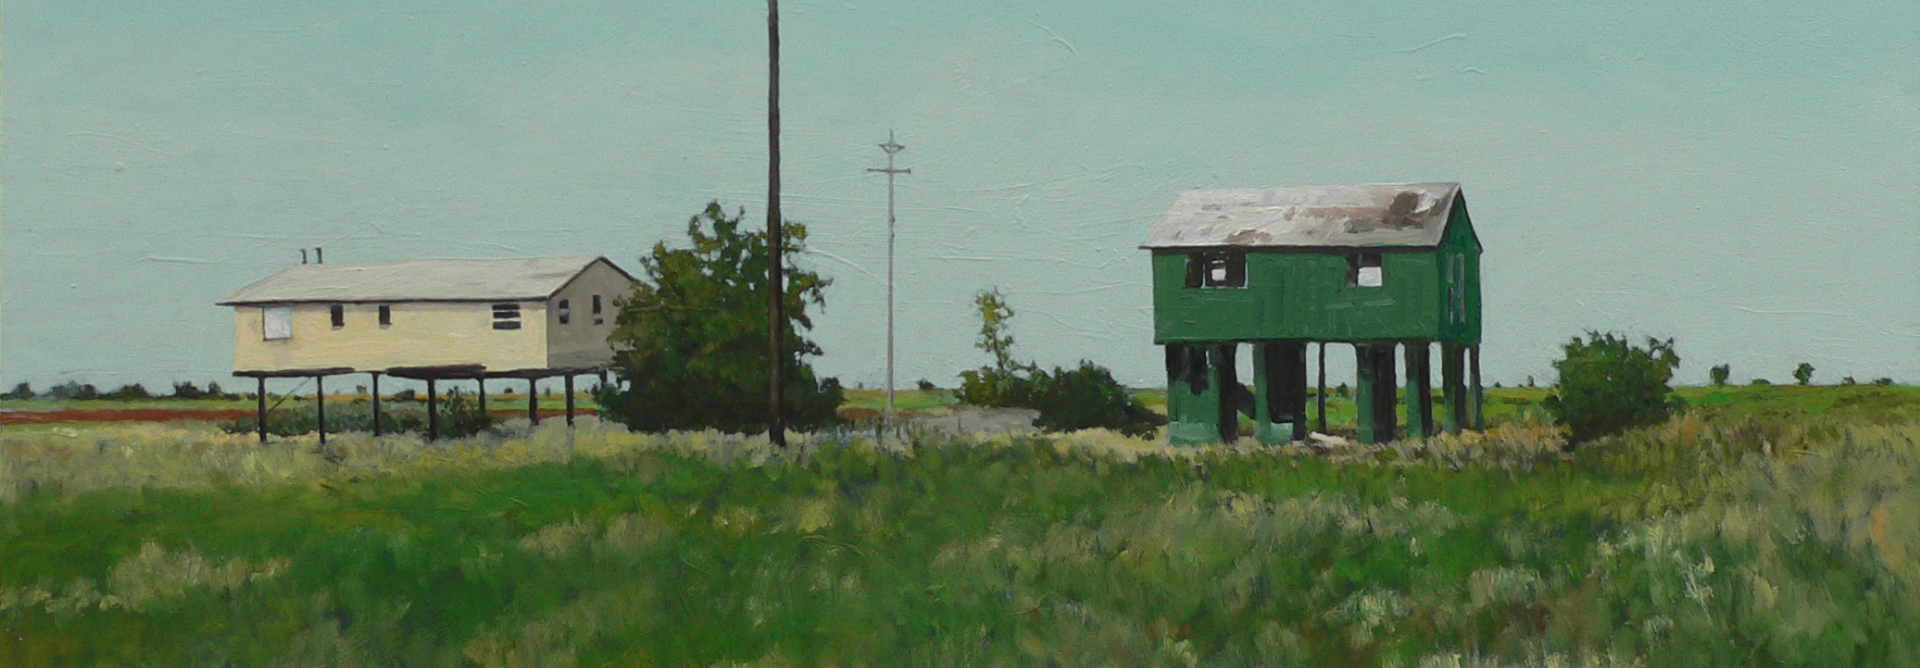 Floodplain Structures. 2001. Oil on canvas, 30 x 40_edited.jpg